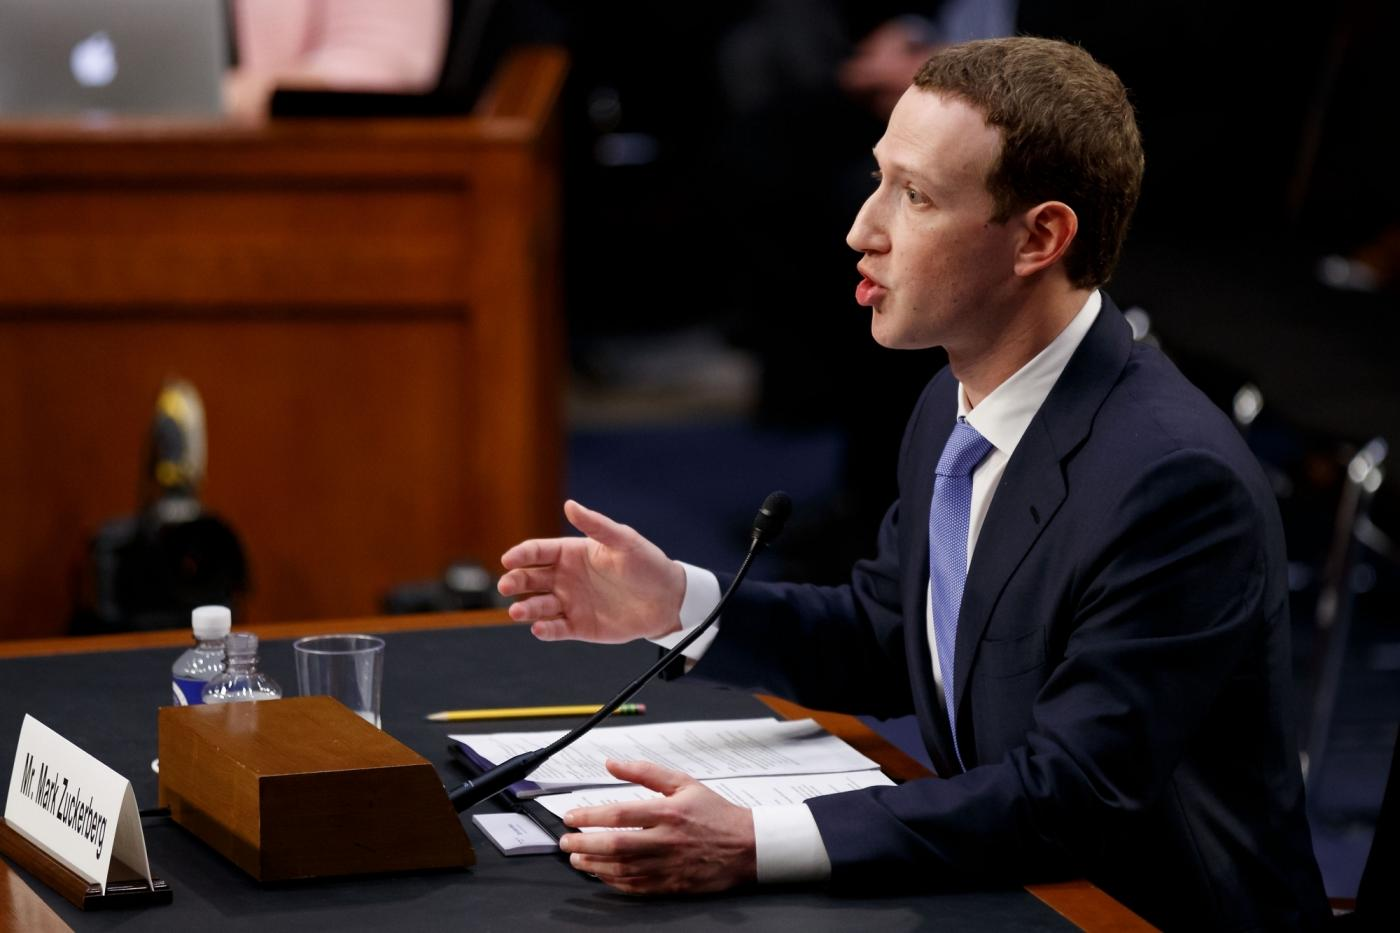 WASHINGTON, April 10, 2018 (Xinhua) -- Facebook CEO Mark Zuckerberg testifies at a joint hearing of the Senate Judiciary and Commerce committees on Capitol Hill in Washington D.C., United States, on April 10, 2018. Facebook CEO Mark Zuckerberg told Congress in written testimony on Monday that he is